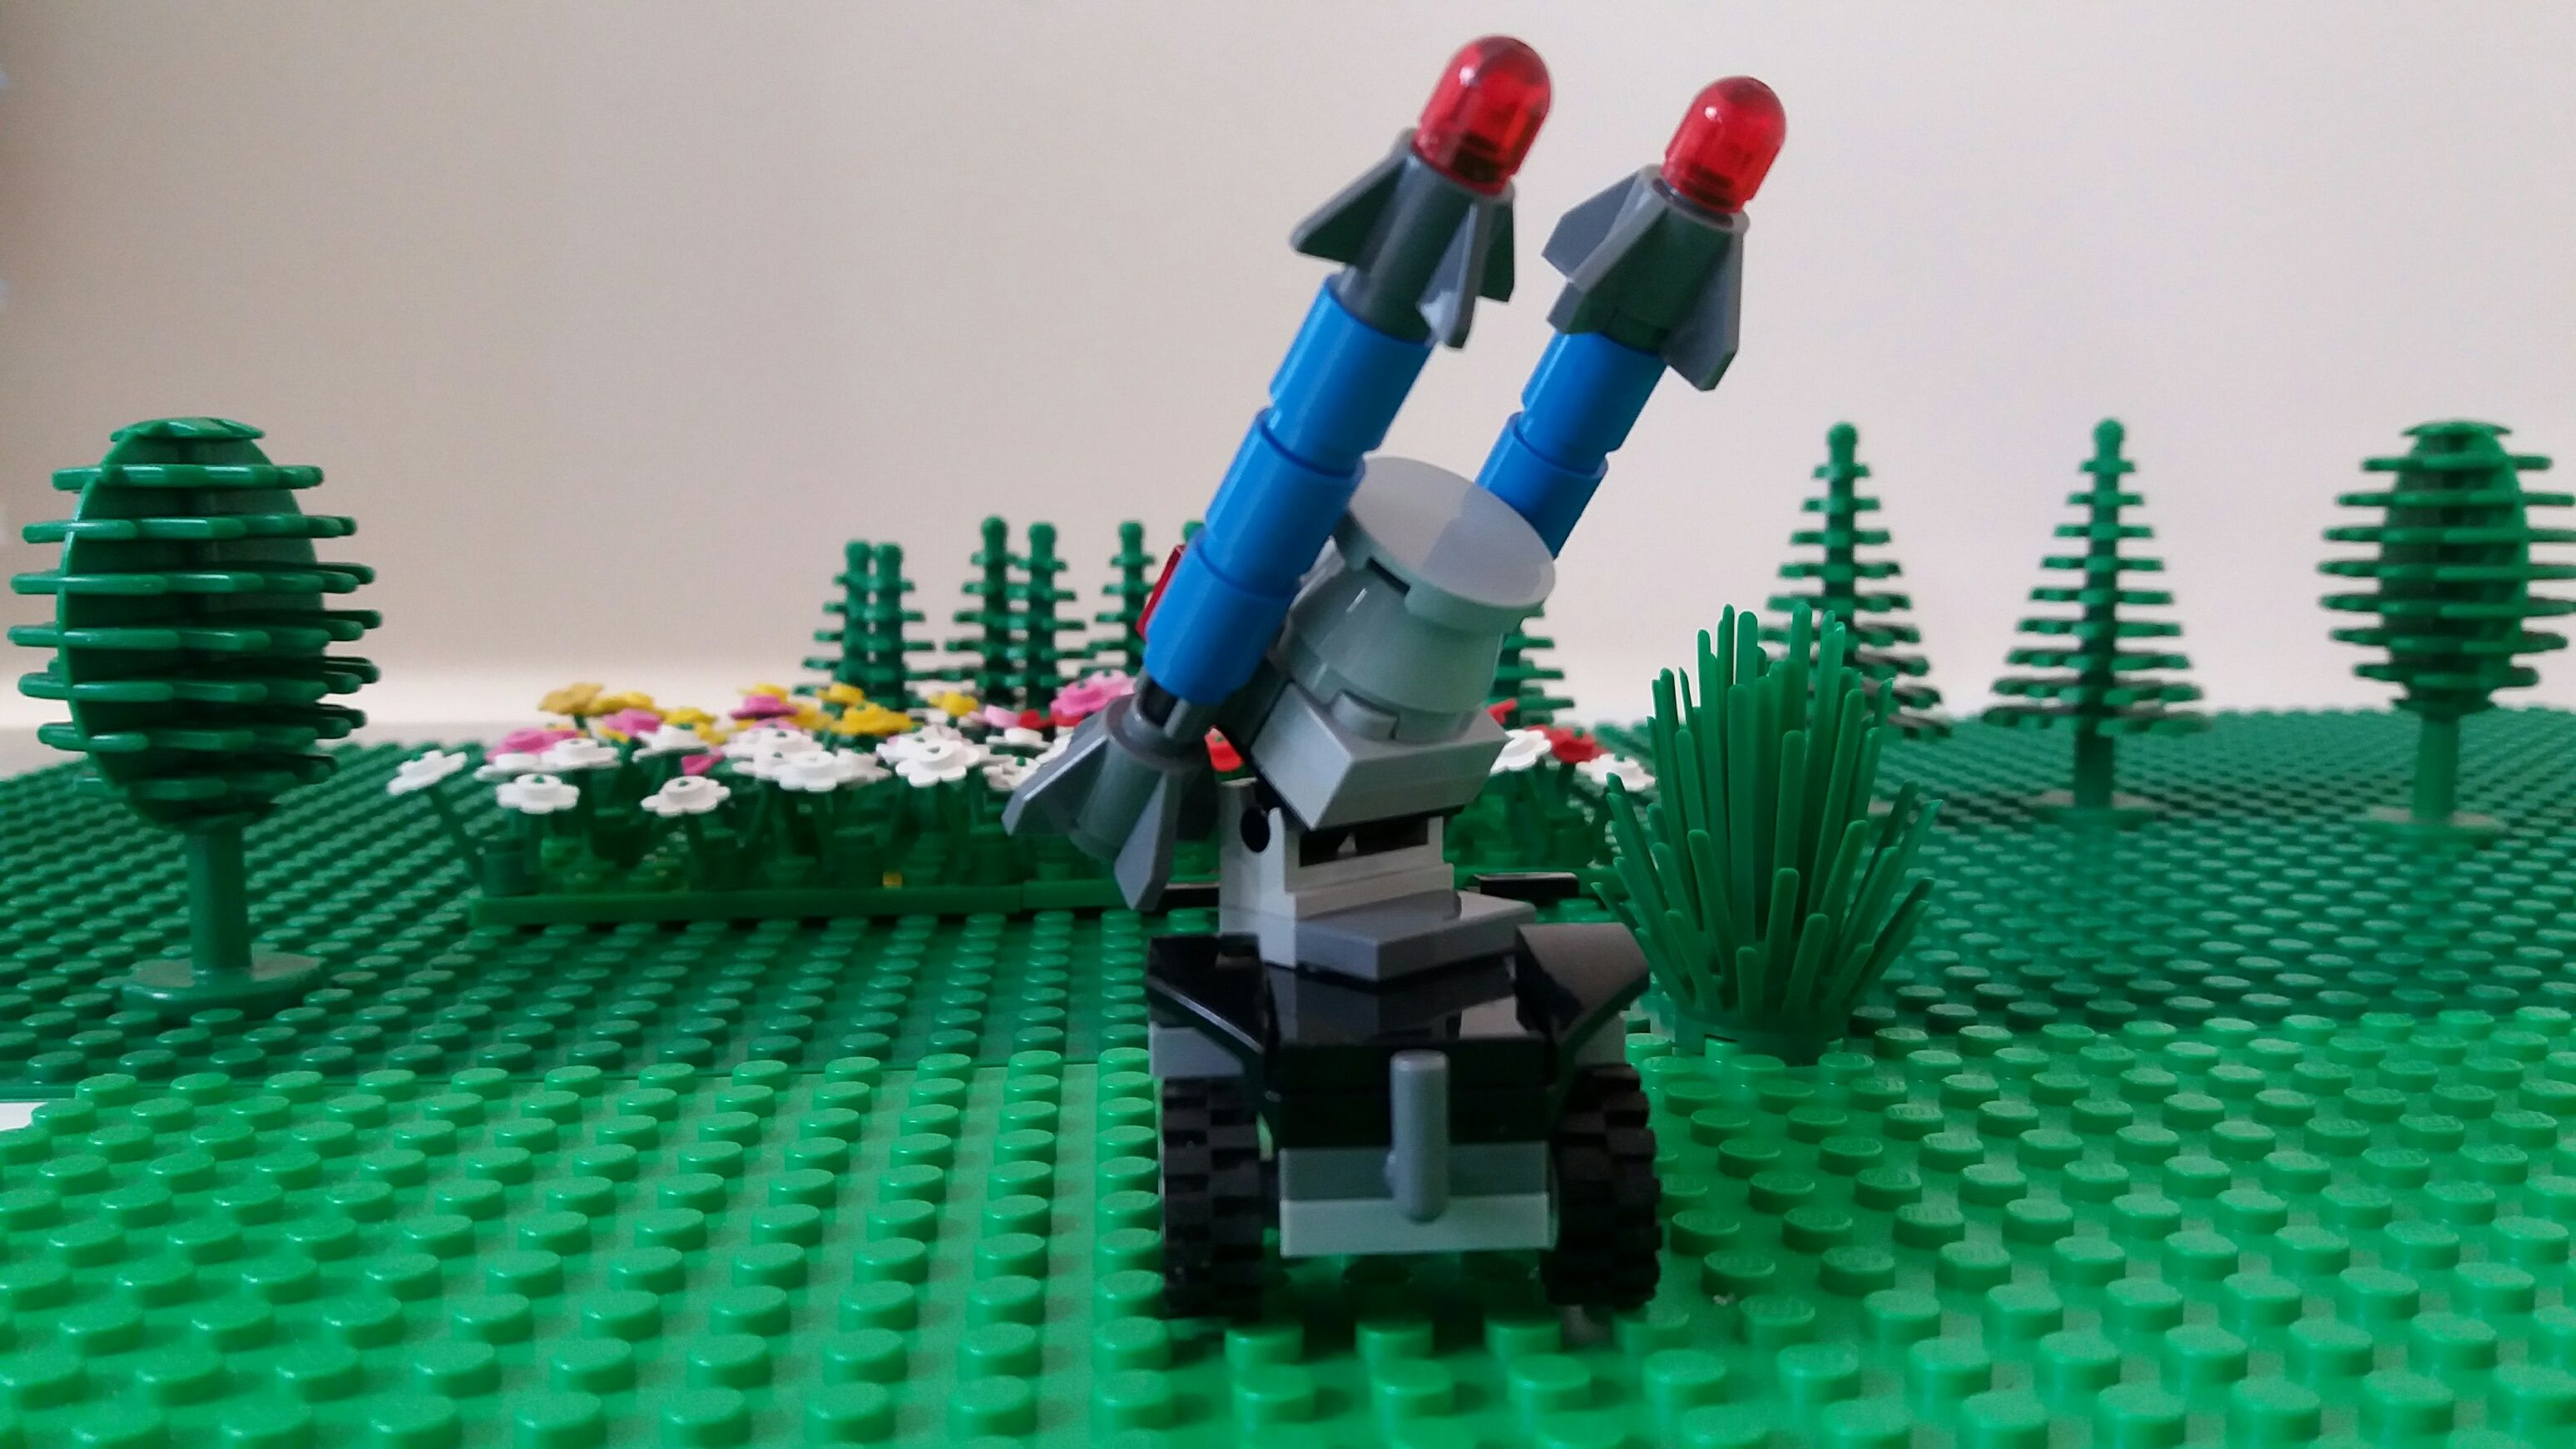 A Simple Sam Missile Launcher From My Website Minebricks Com